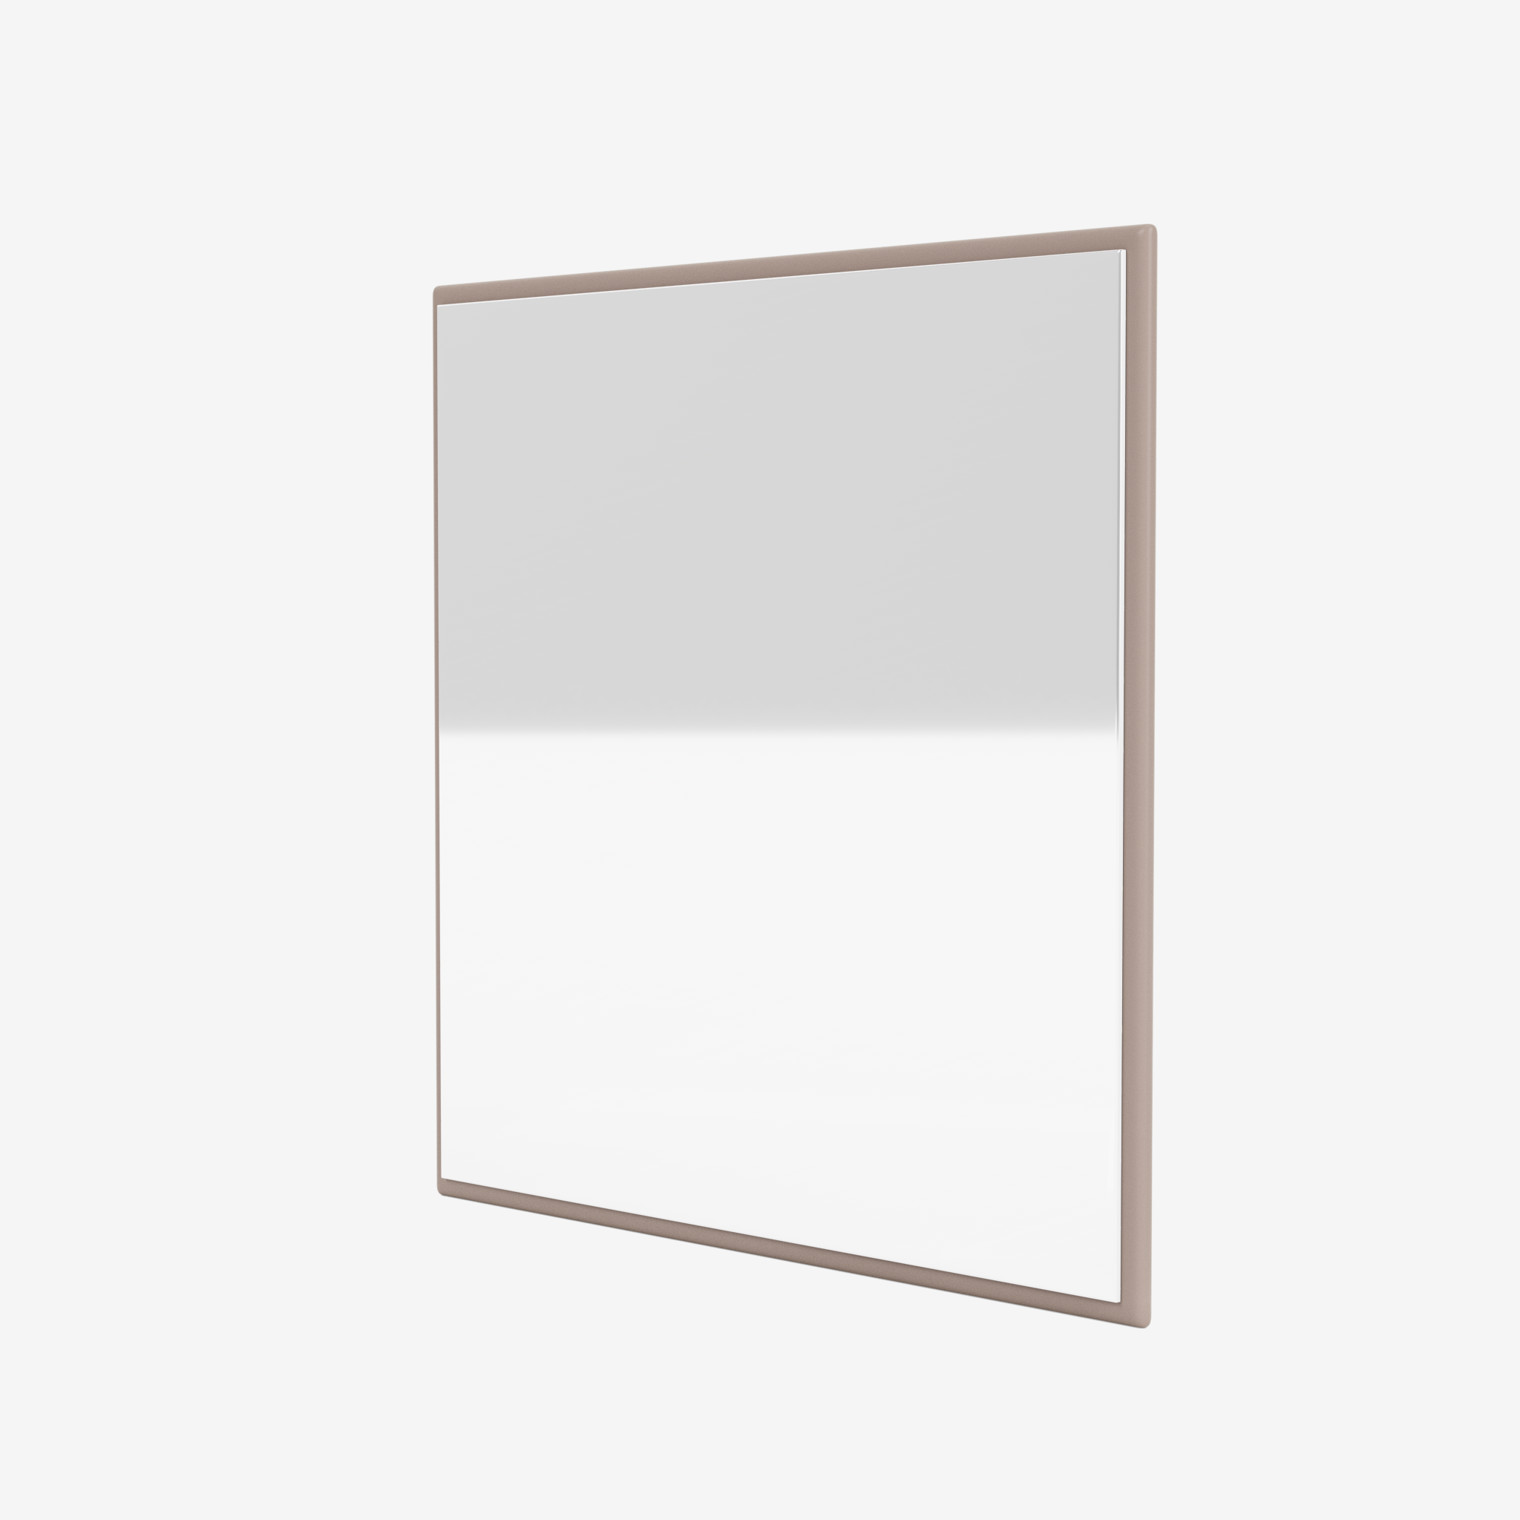 Montana Mini MSQ square mirror